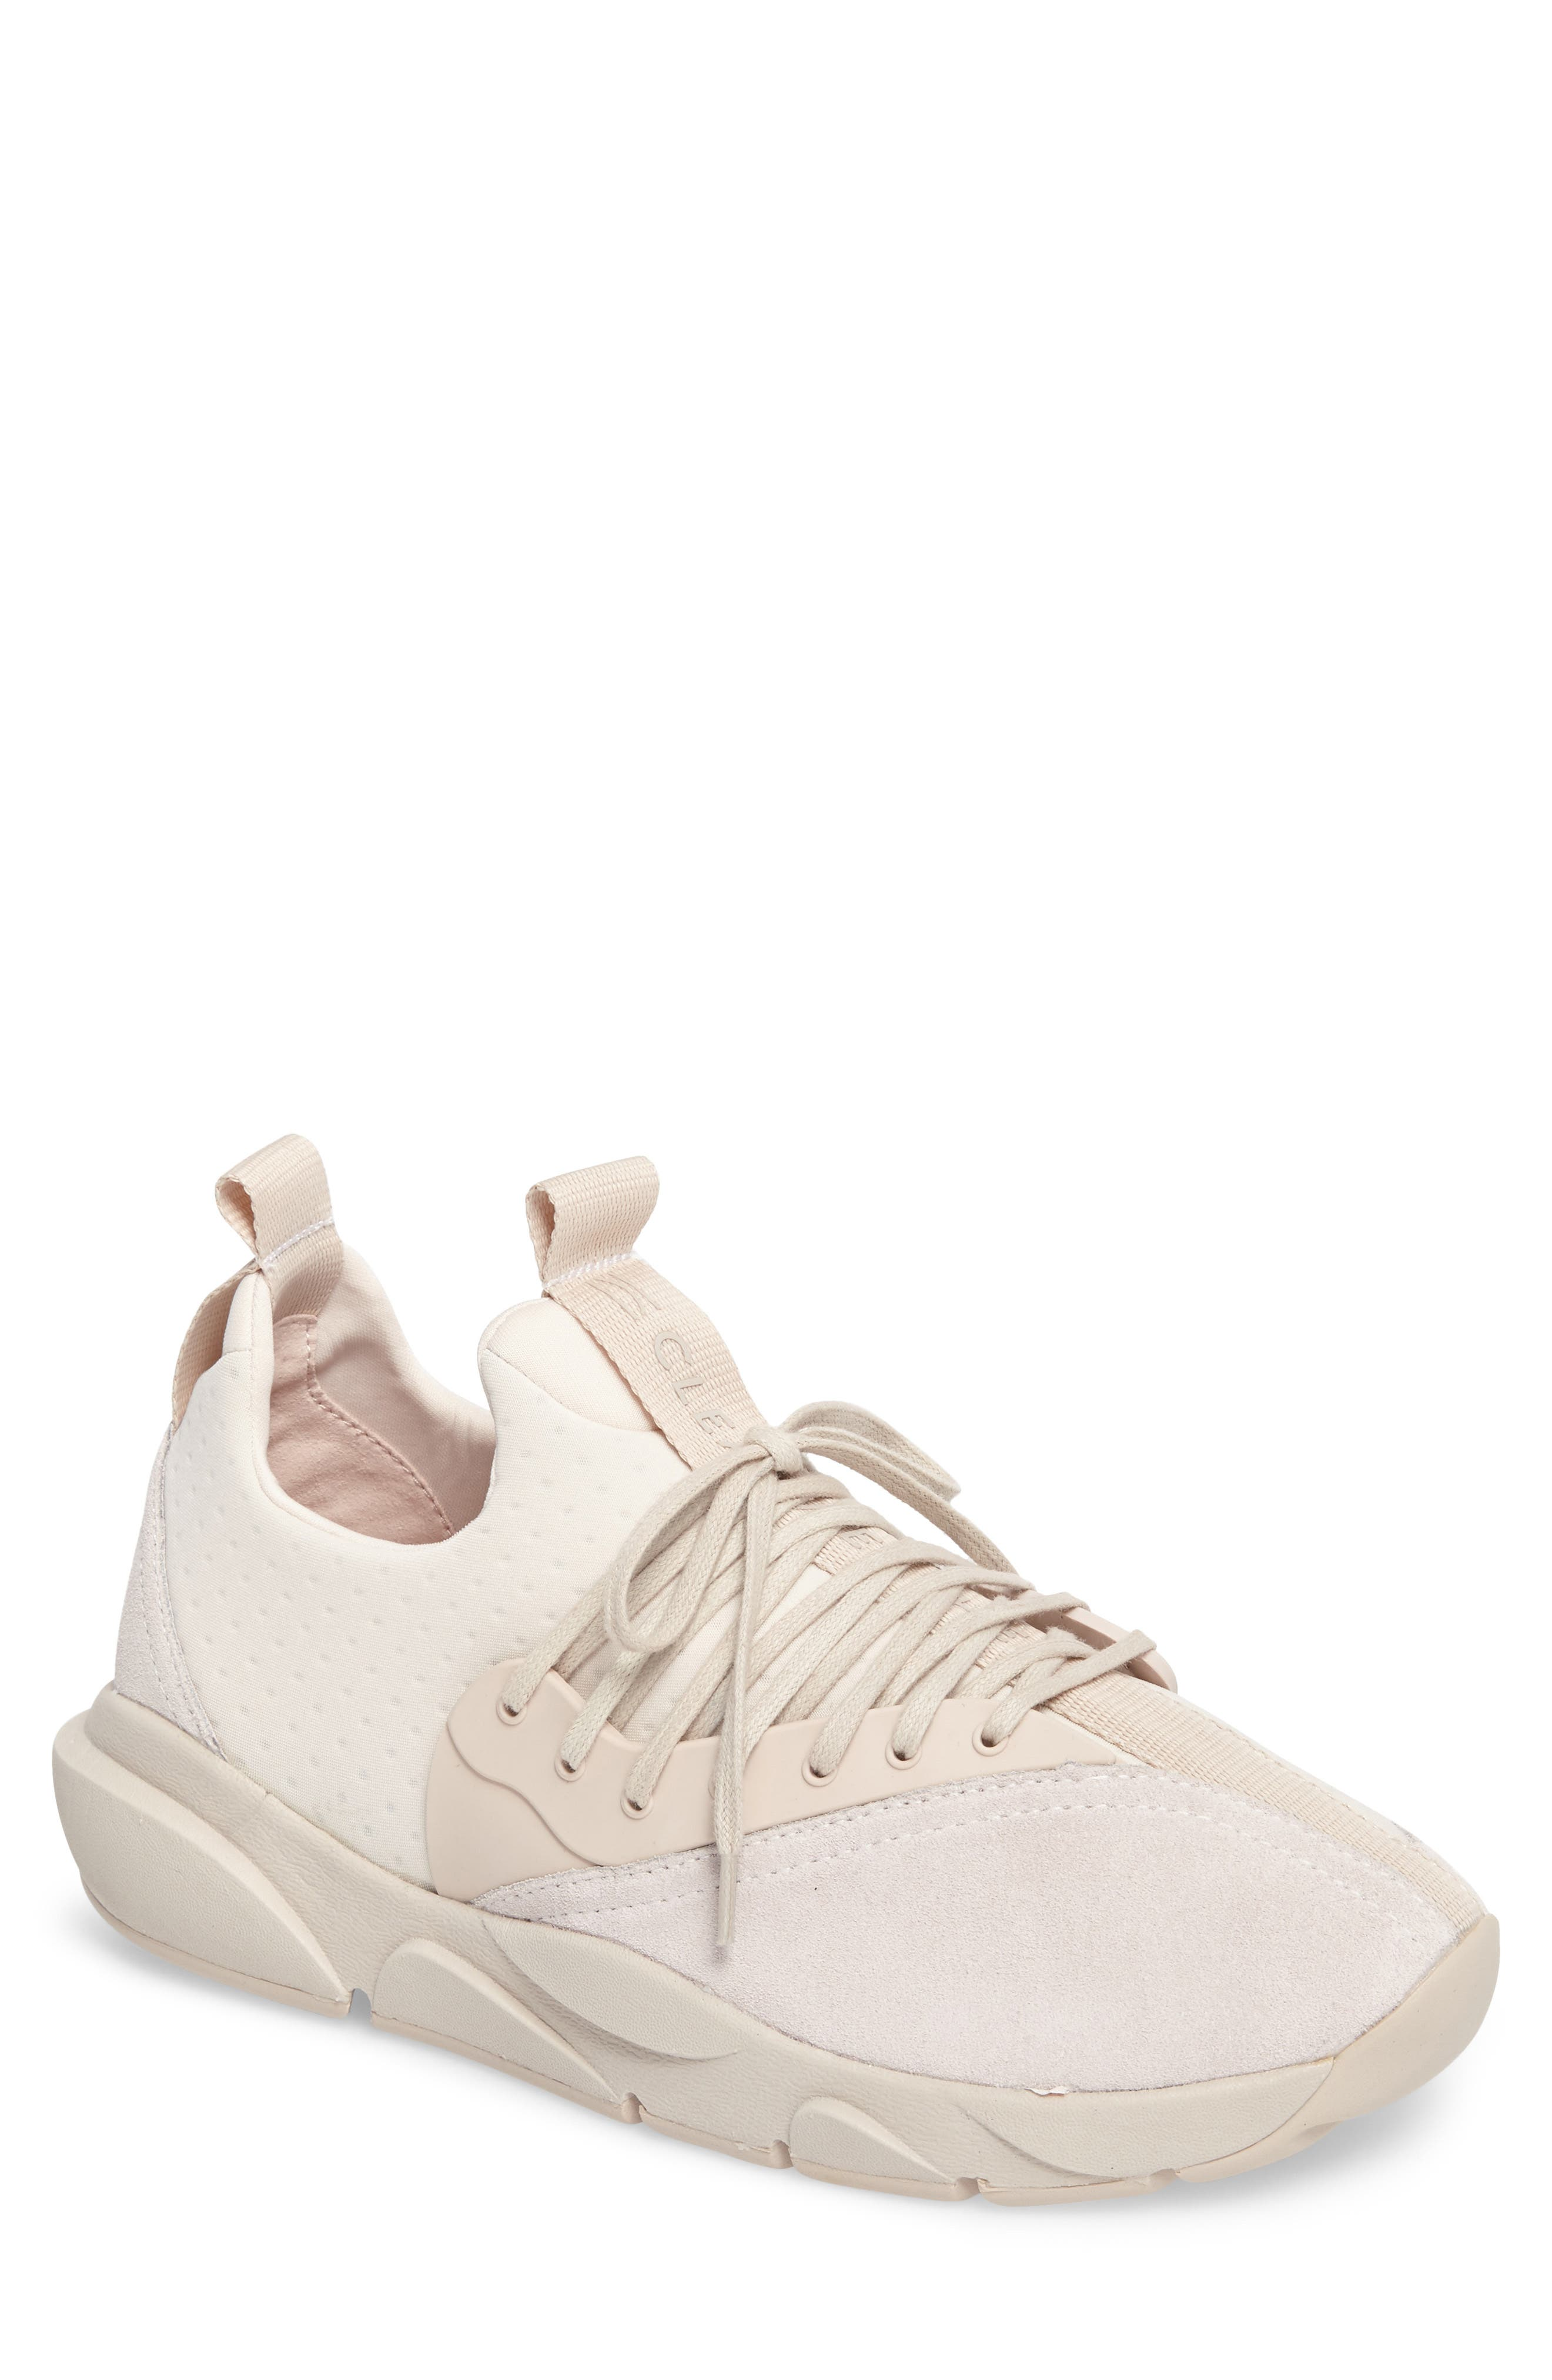 Alternate Image 1 Selected - Clearweather The Cloud Stryke Sneaker (Men)